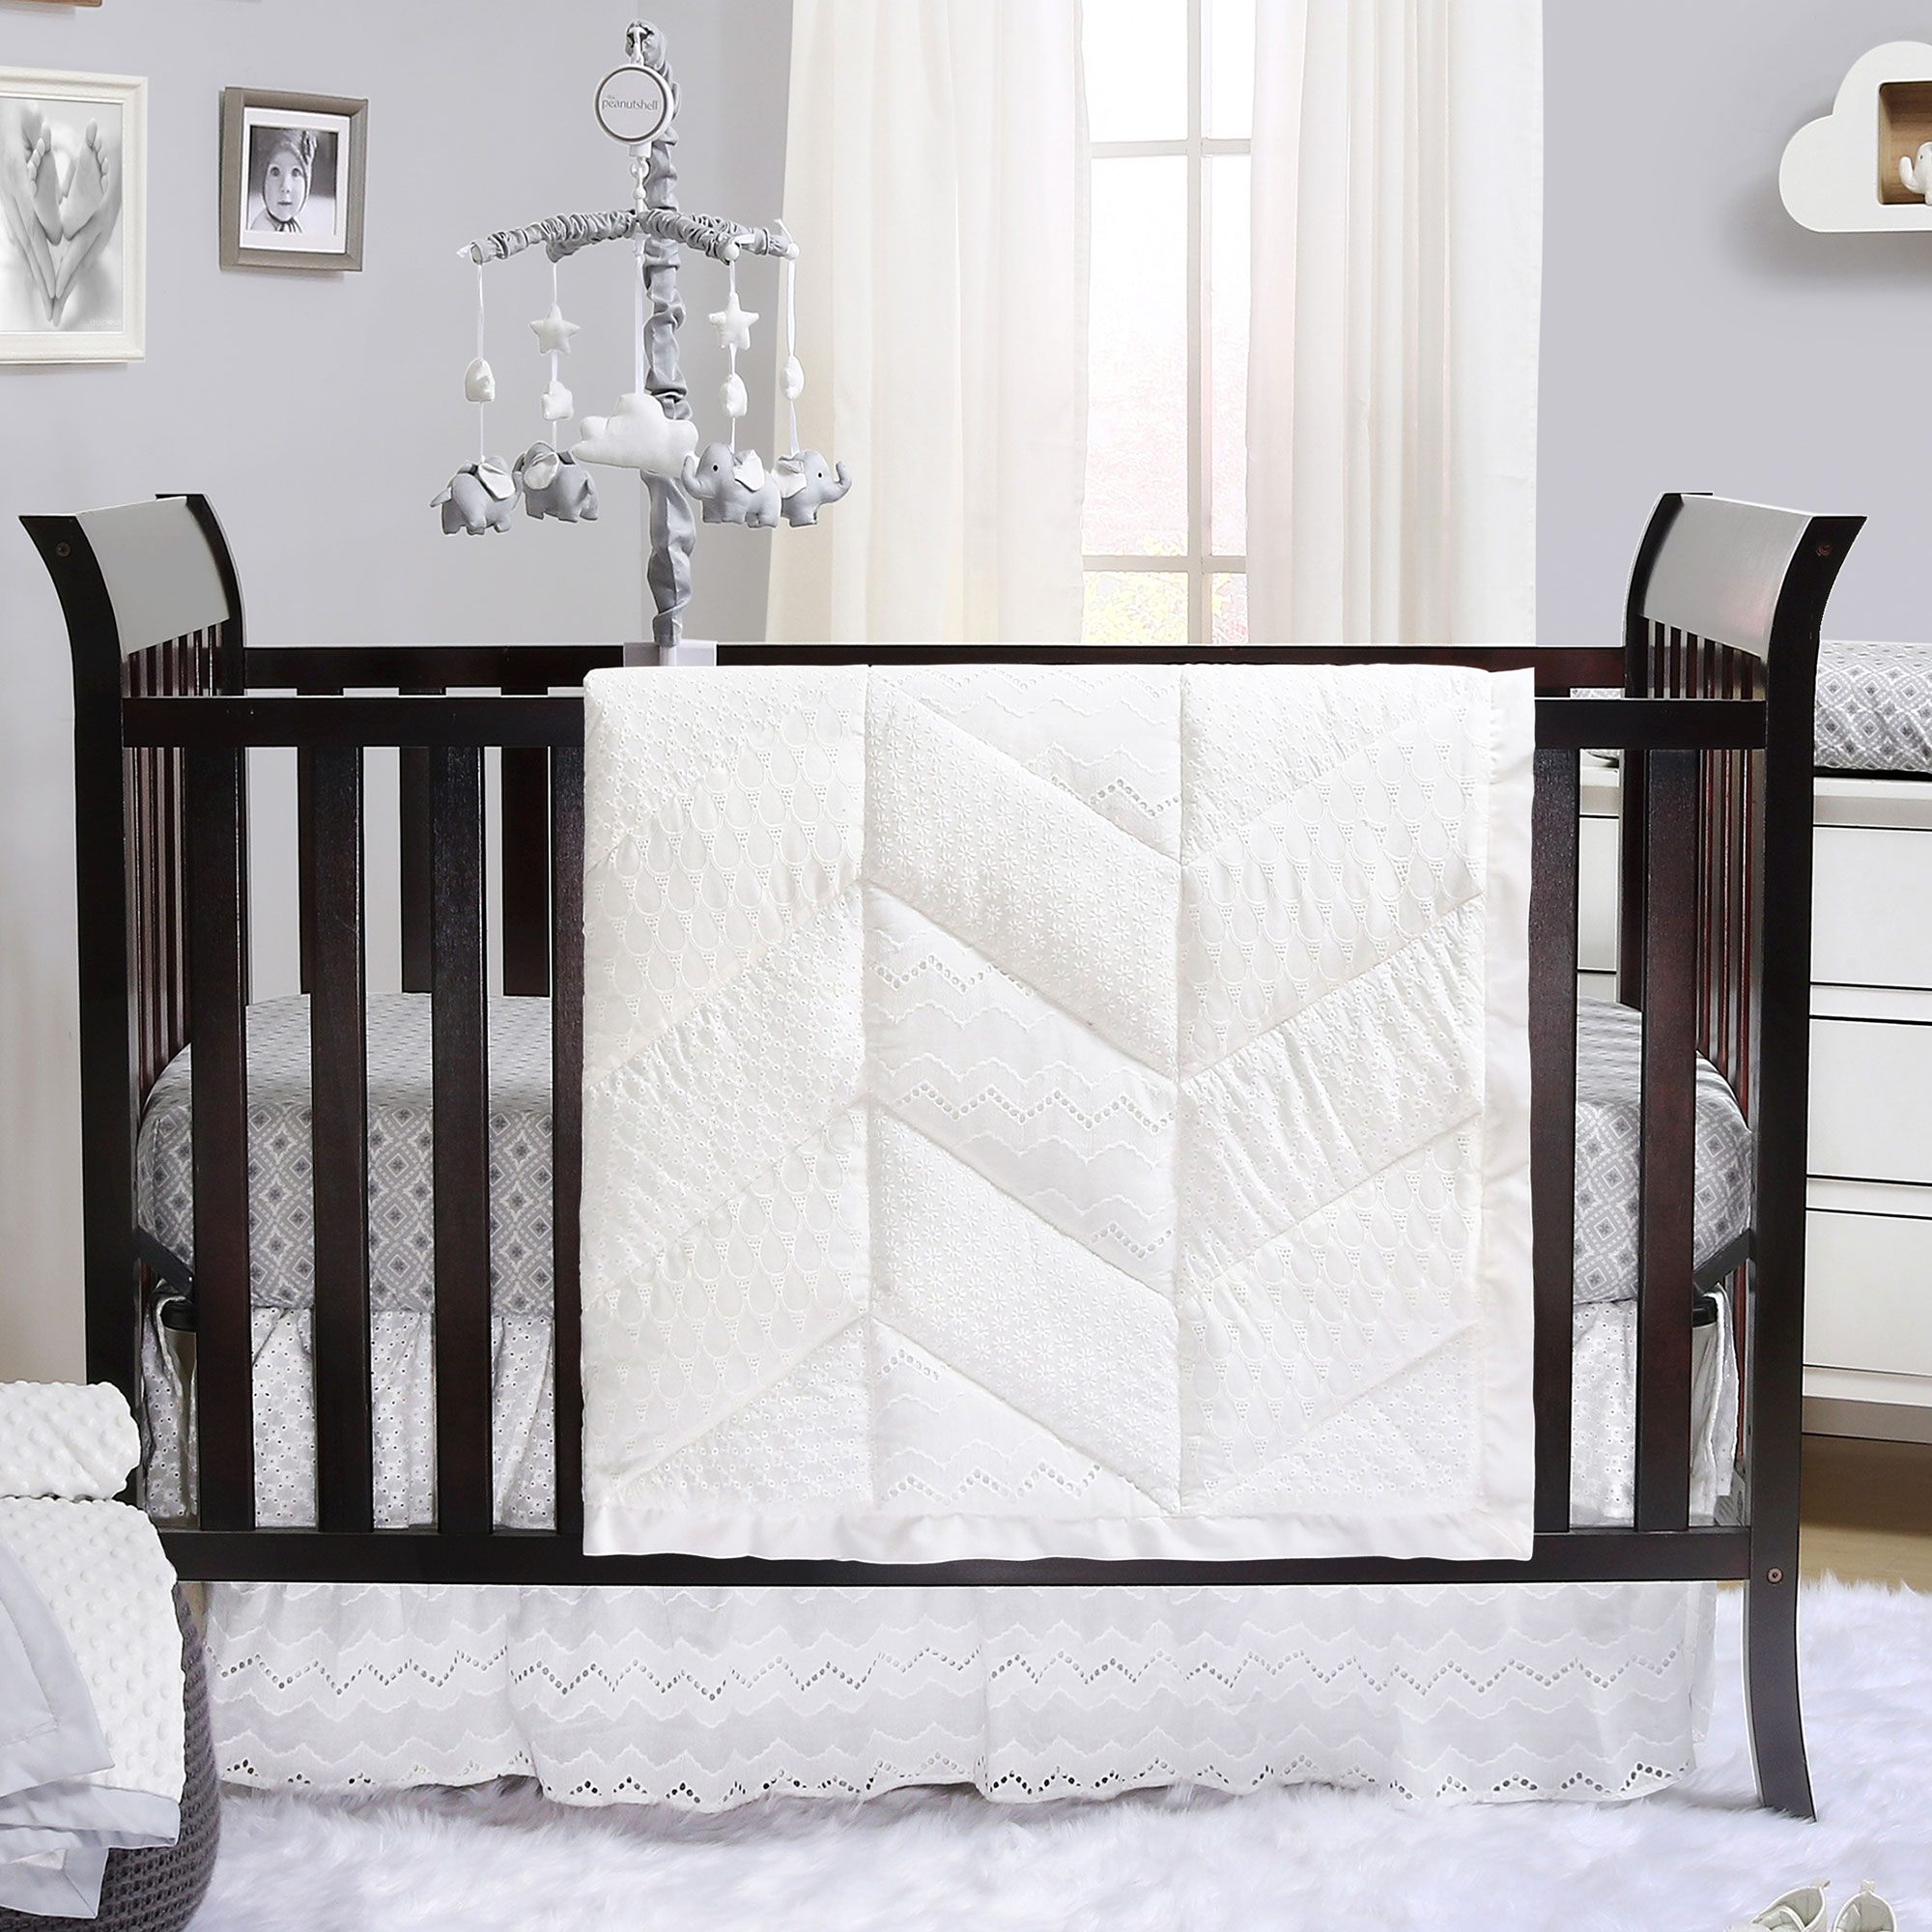 Taylor White Eyelet 4 Piece Baby Crib Bedding Set by The Peanut Shell by The Peanut Shell